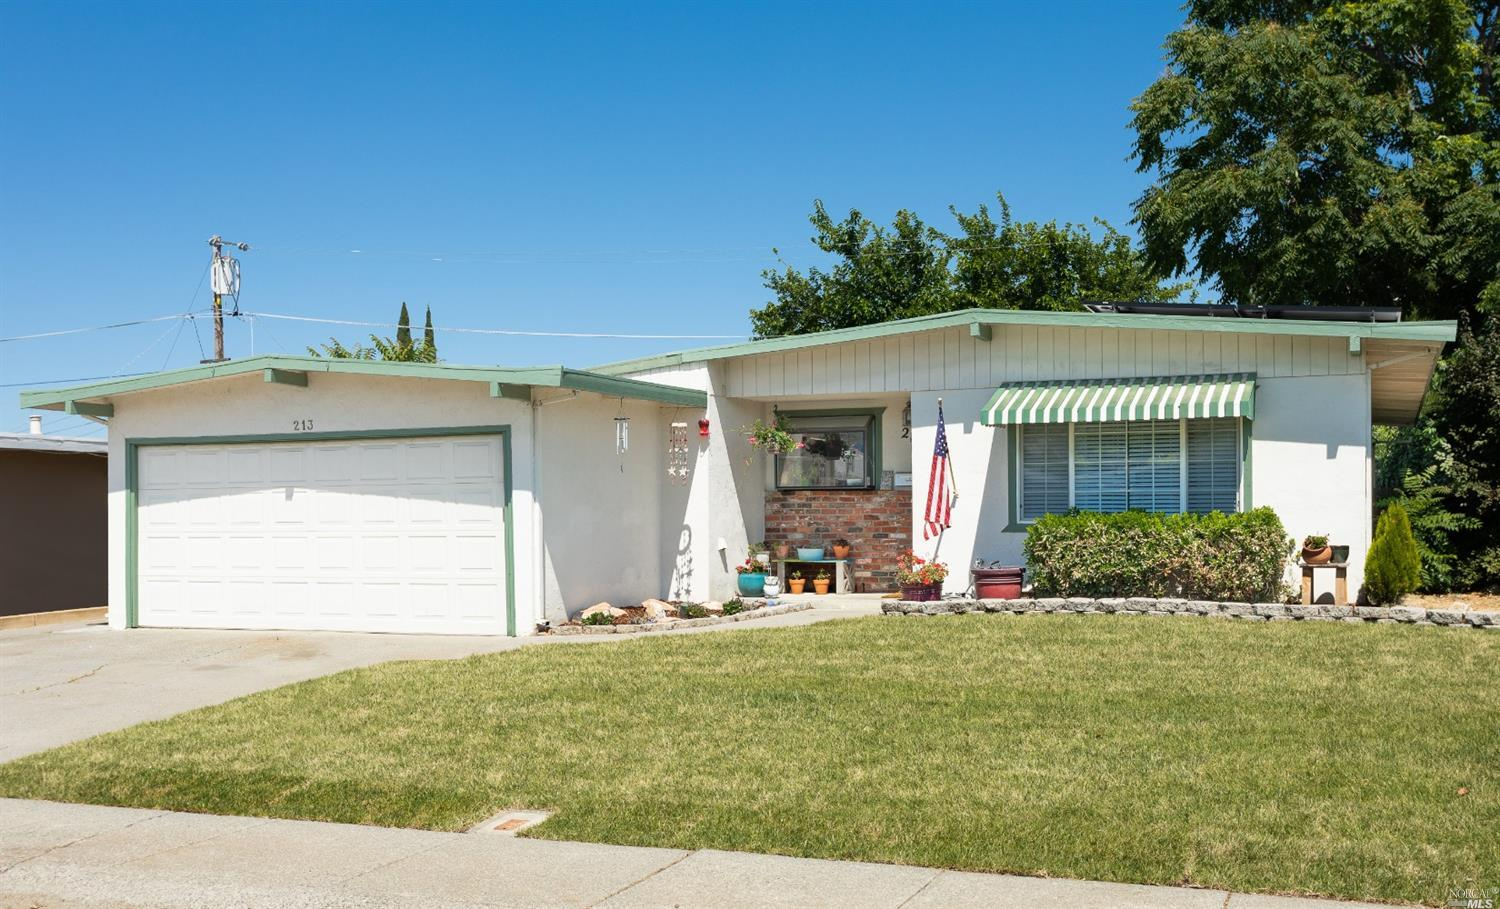 Photo of 213 Madrone Street, Vacaville, CA 95688